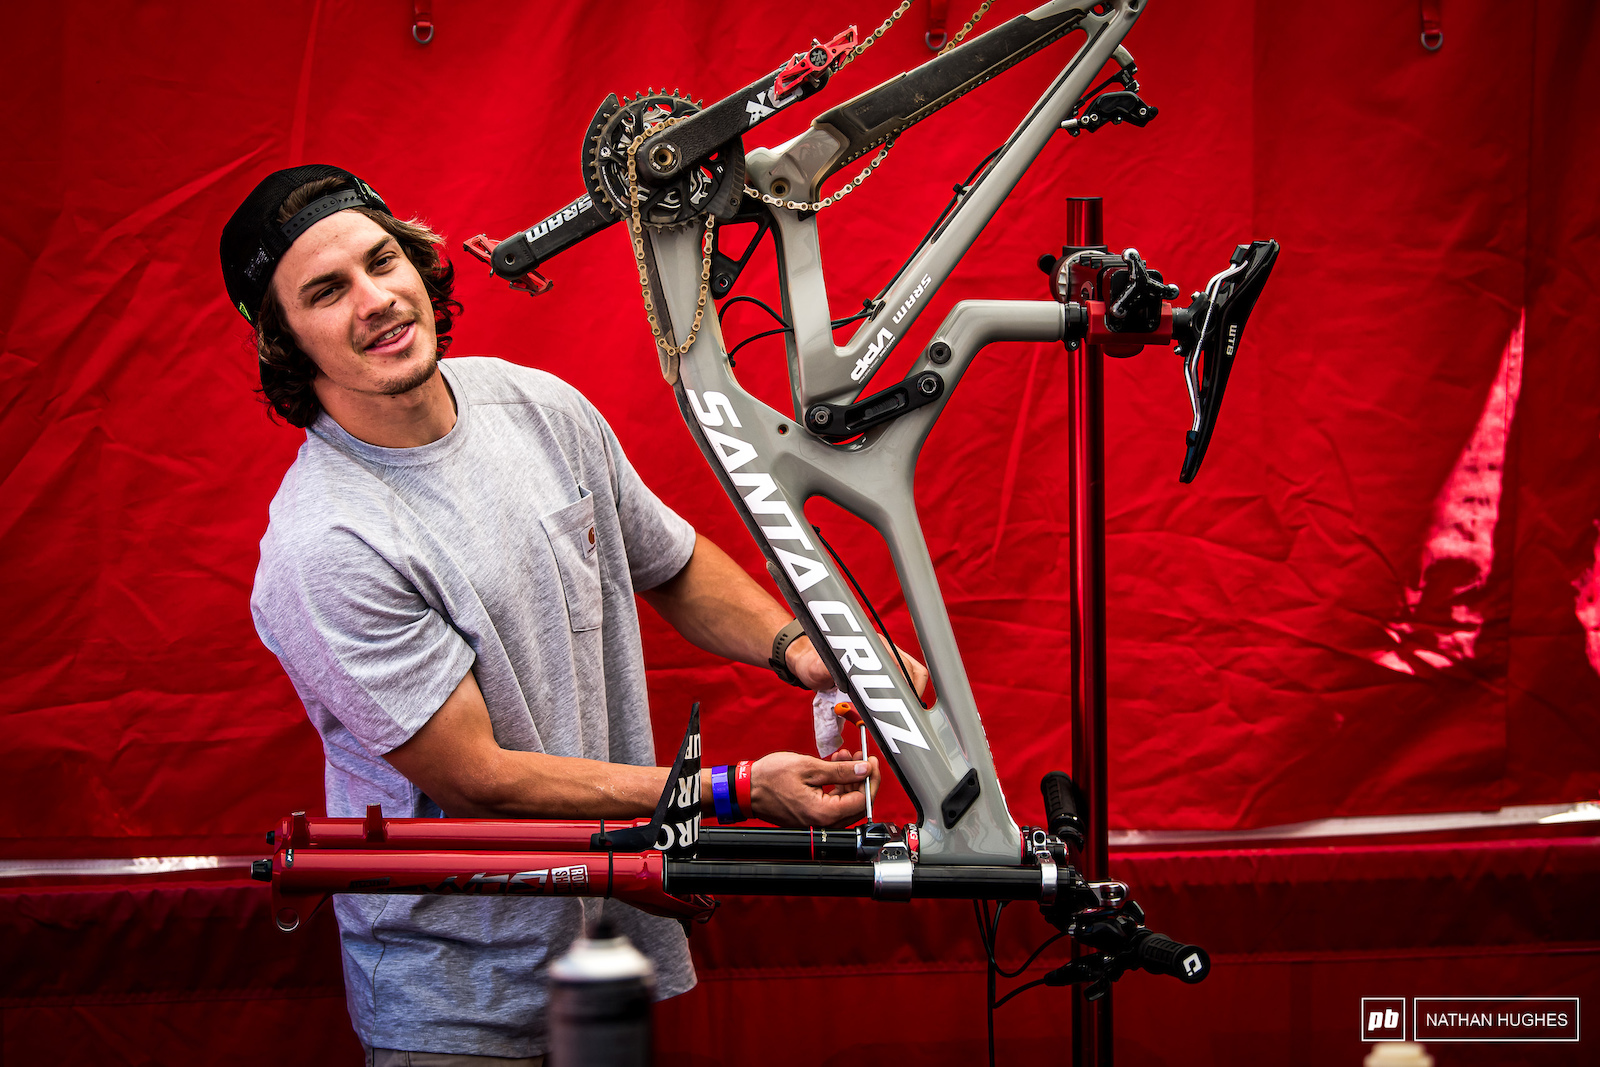 Mitch Ropo self-wrenching his way through the 2019 season. Of course under the watchful eye of the Sram master-mechanics.